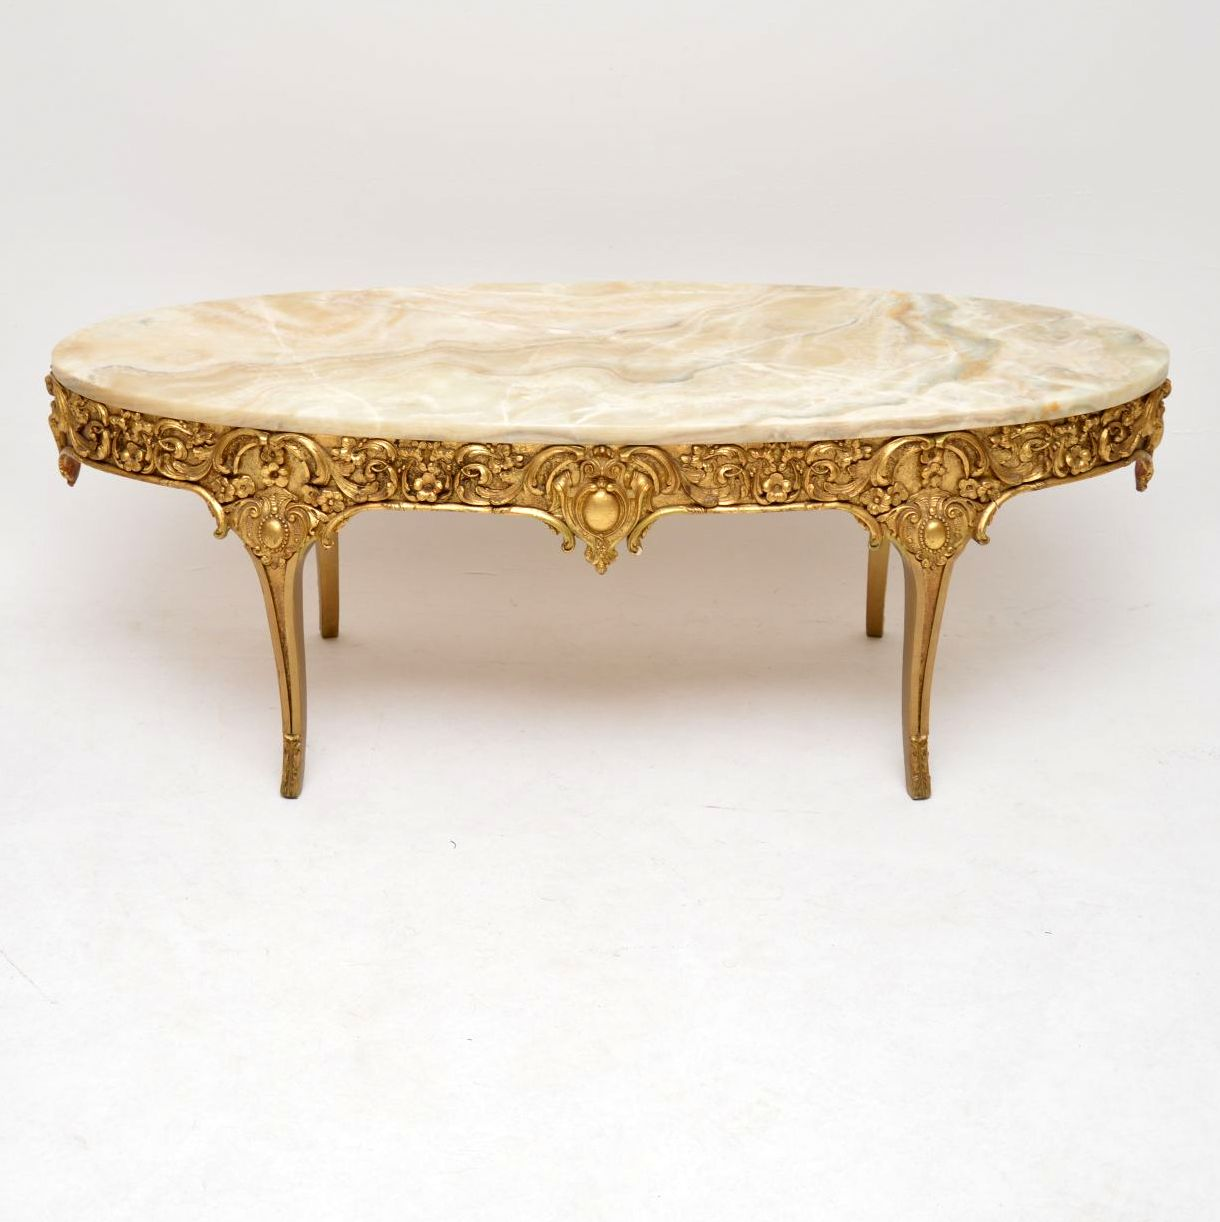 Antique French Gilt Wood & Gesso Coffee Table